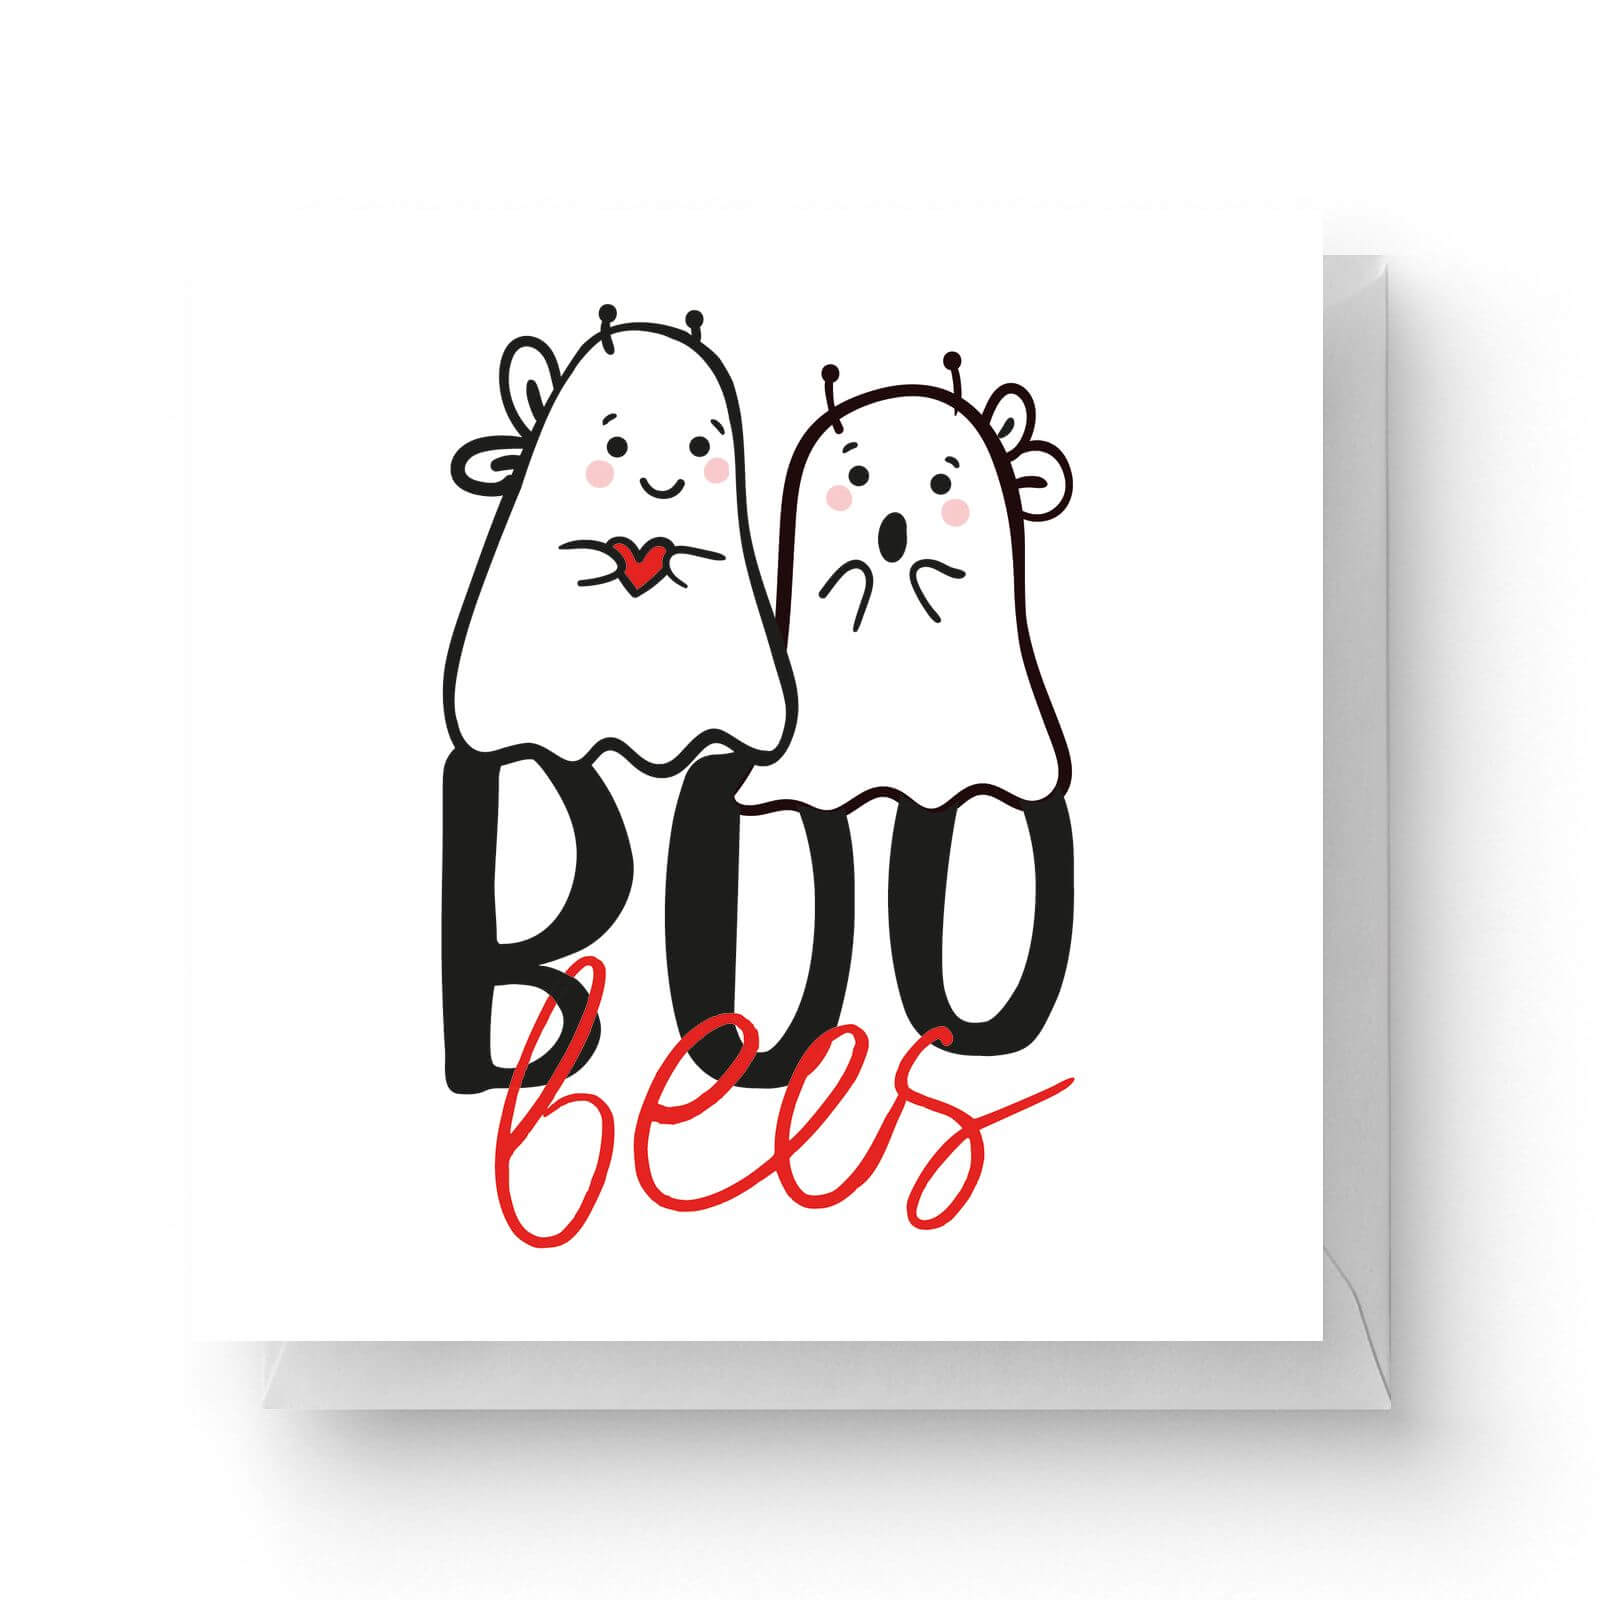 Image of Boo Bees Square Greetings Card (14.8cm x 14.8cm)